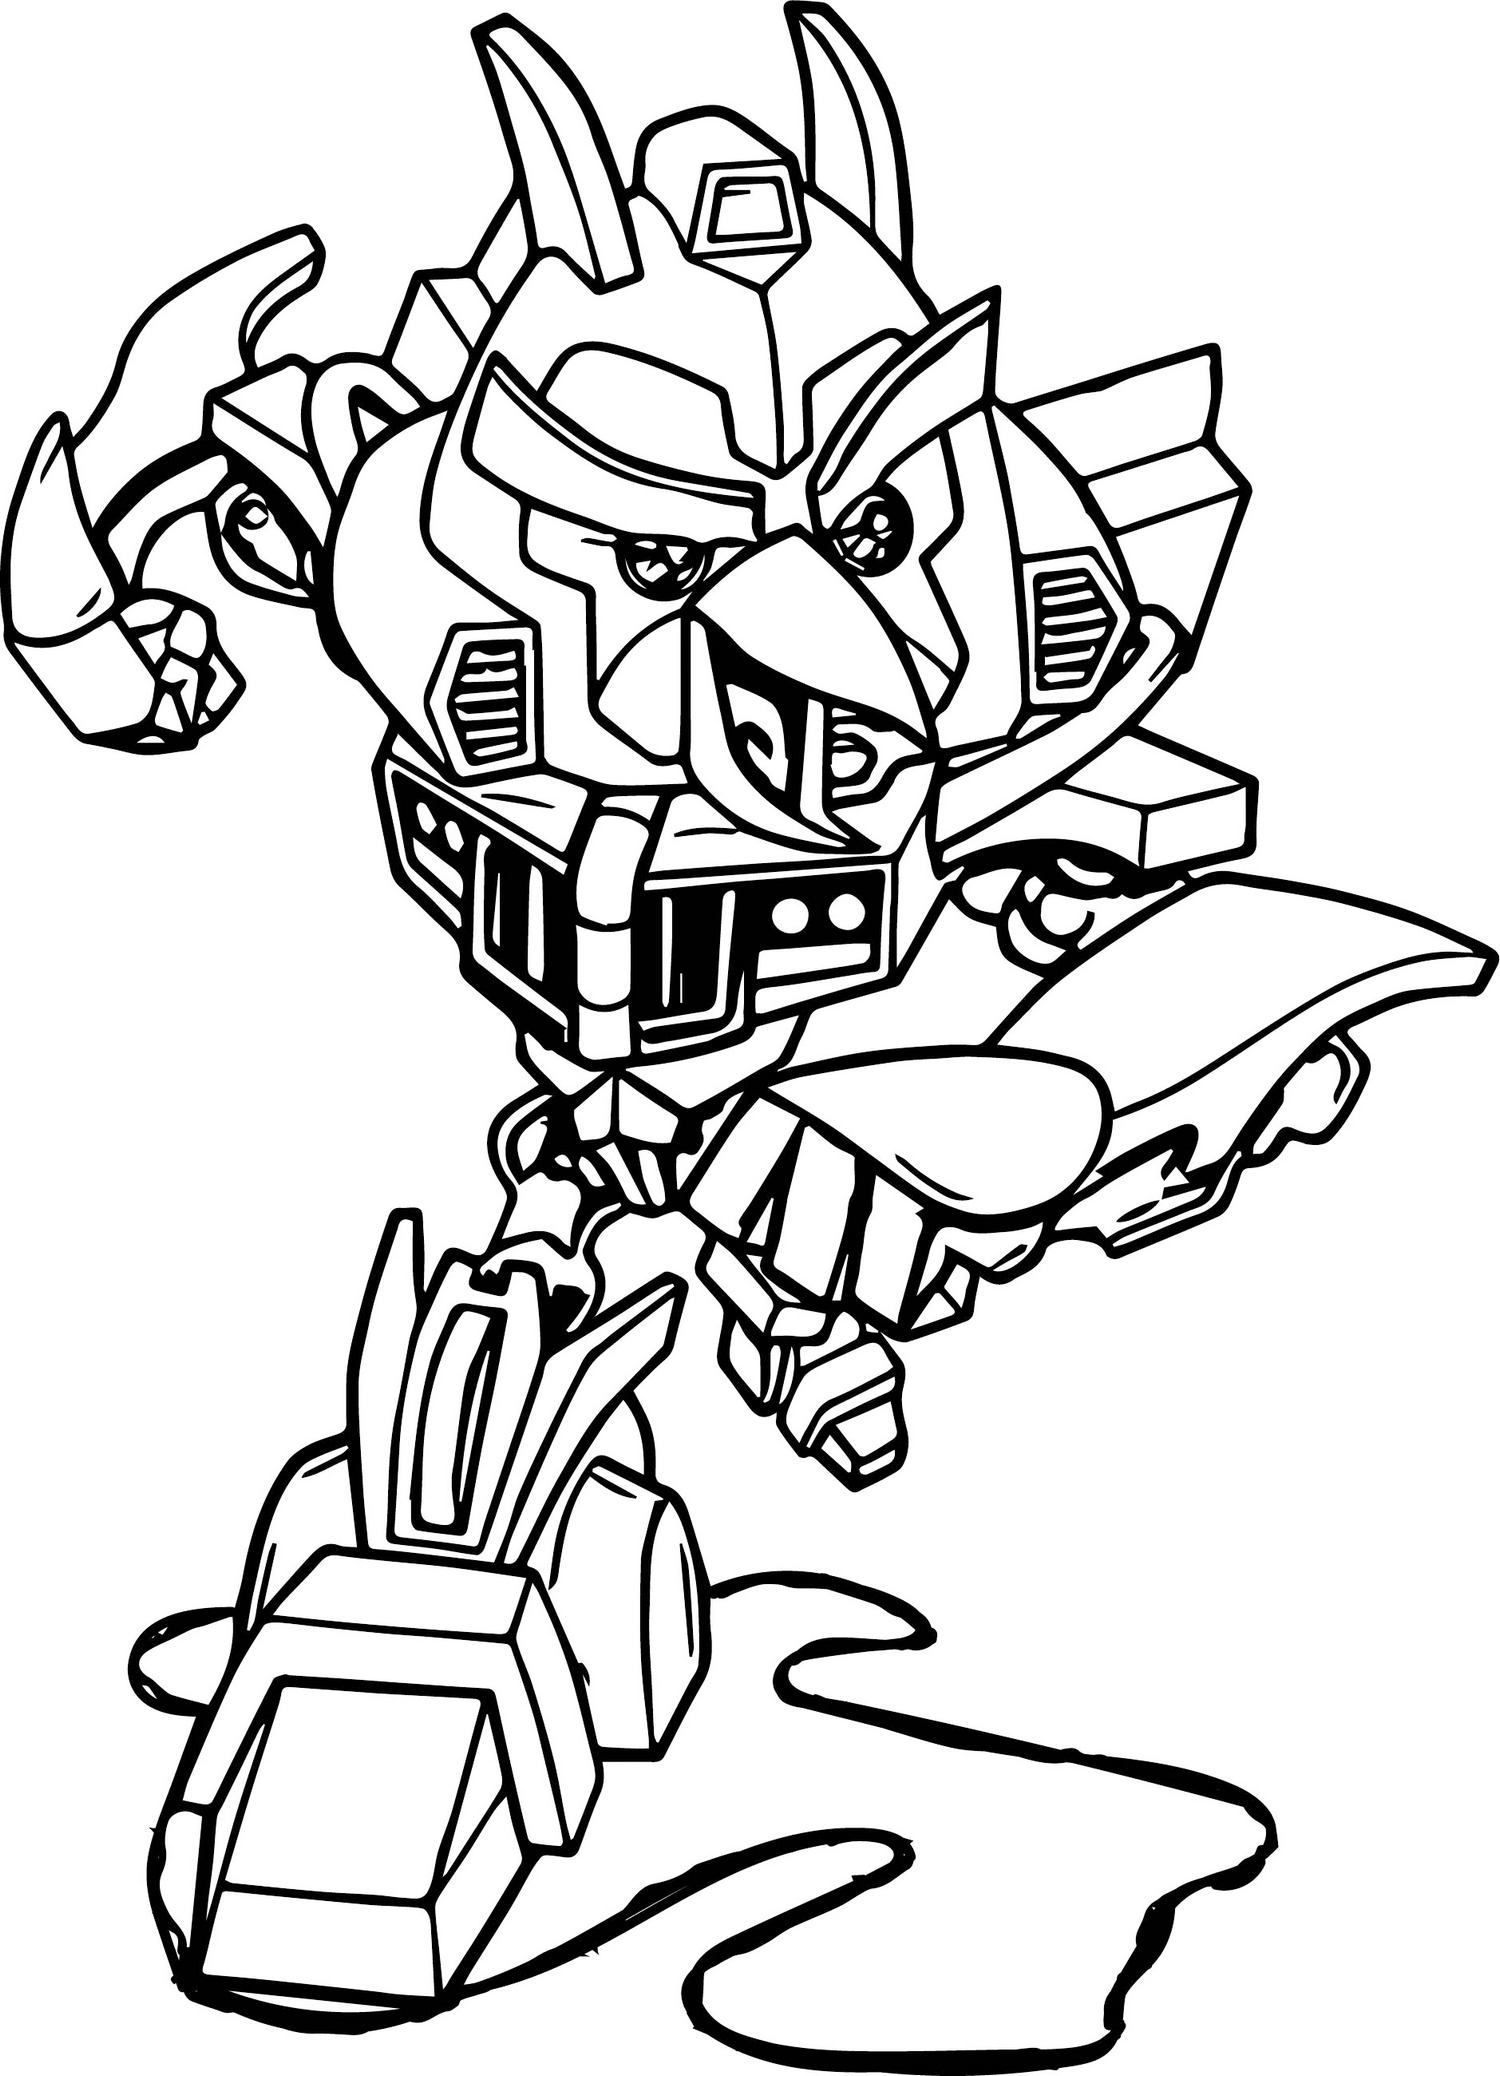 Angry Bird Transformers Bumblebee Coloring Sheet Bird Coloring Pages Bee Coloring Pages Transformers Coloring Pages